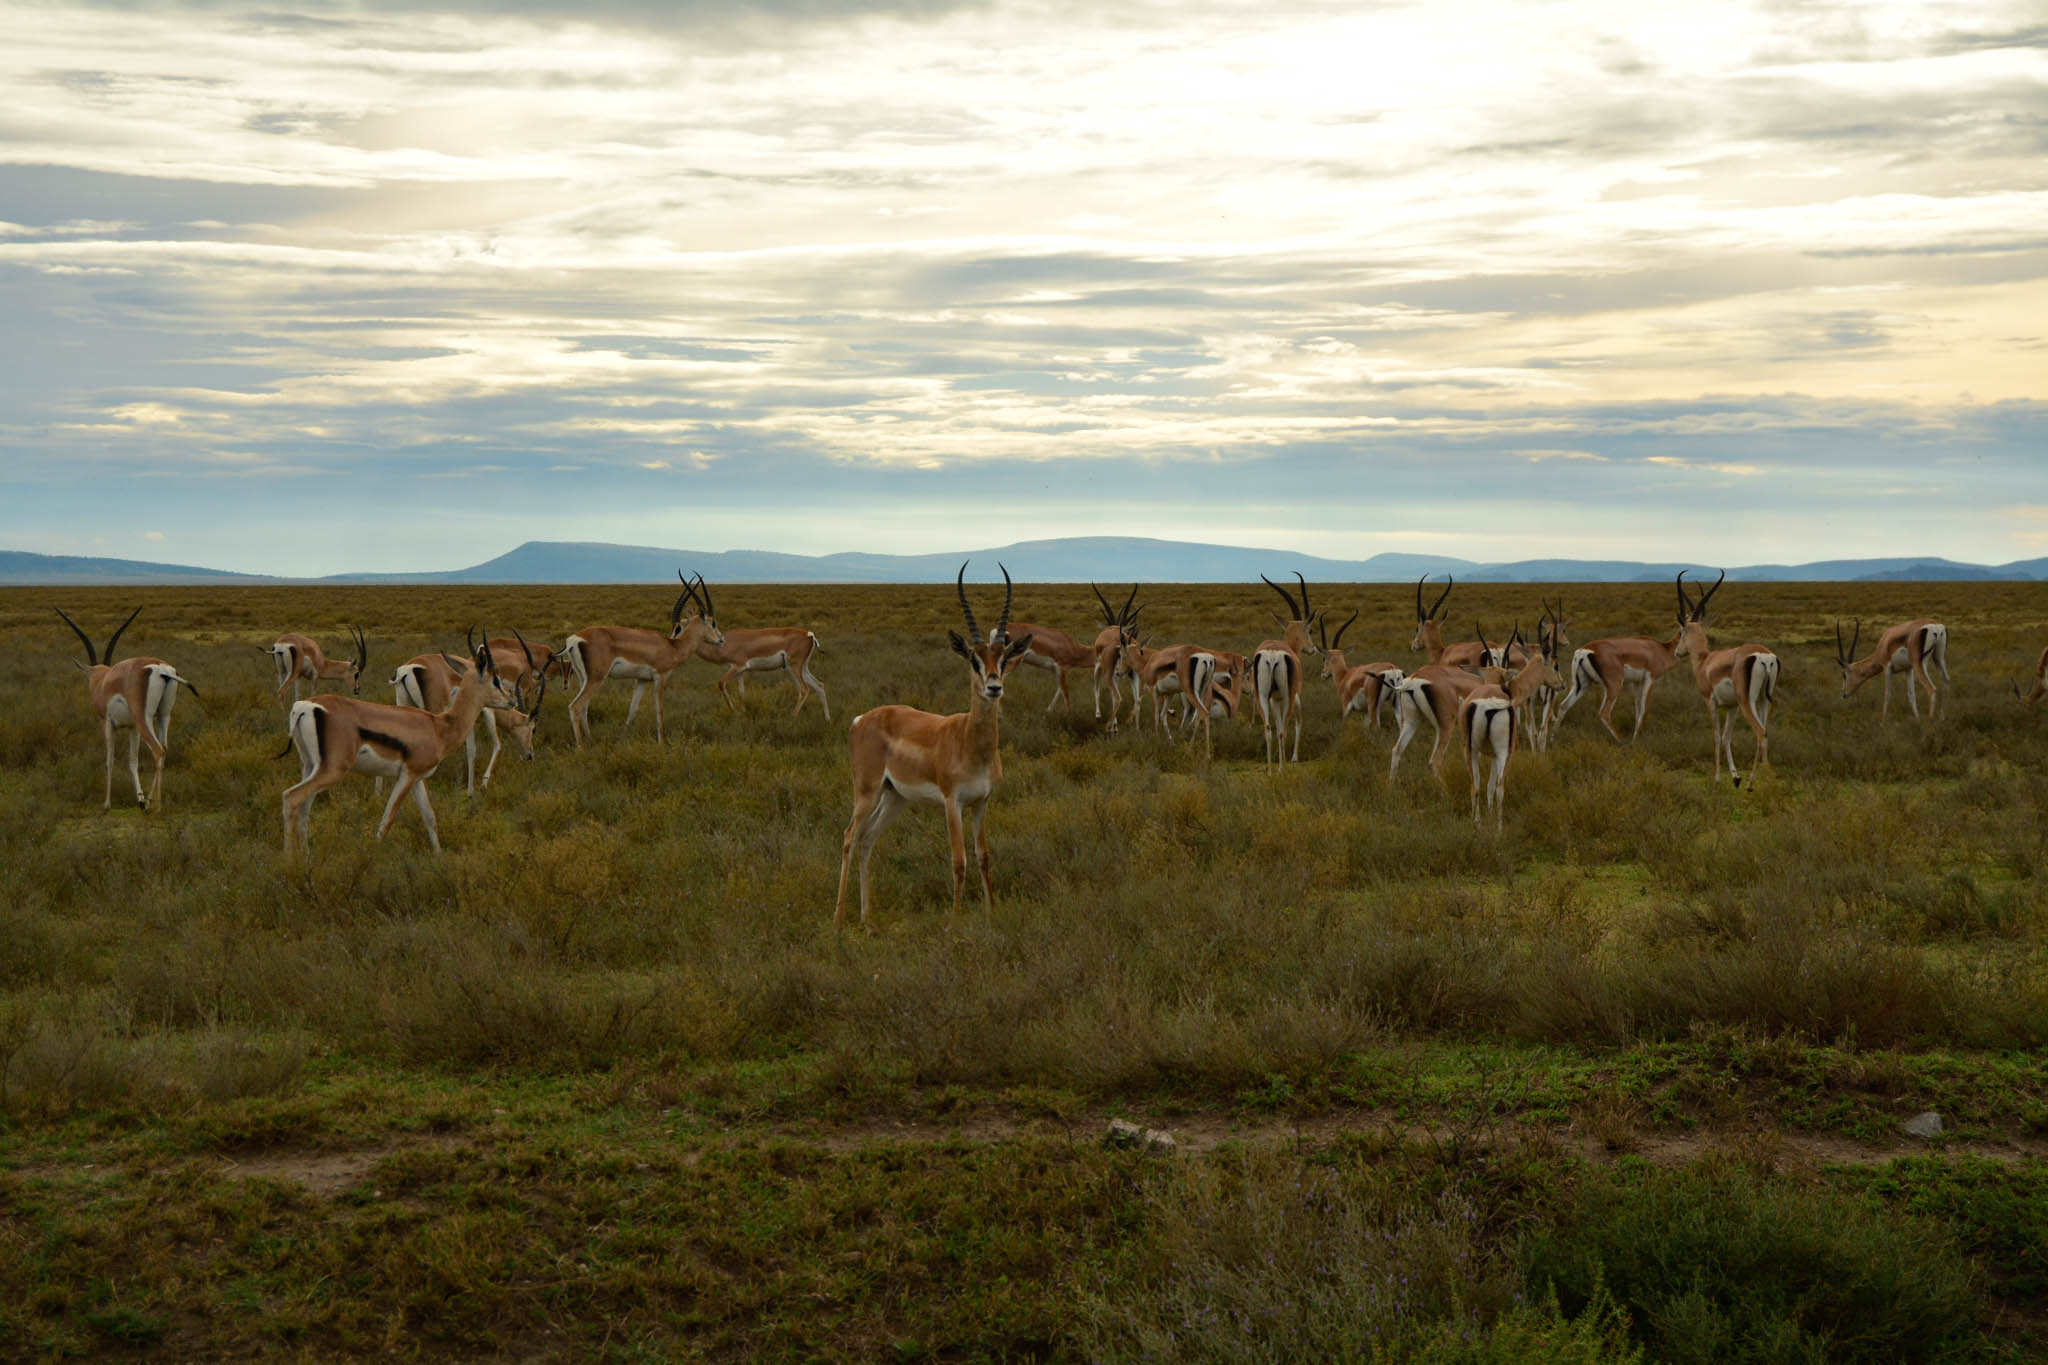 These guys welcome you to the Serengeti